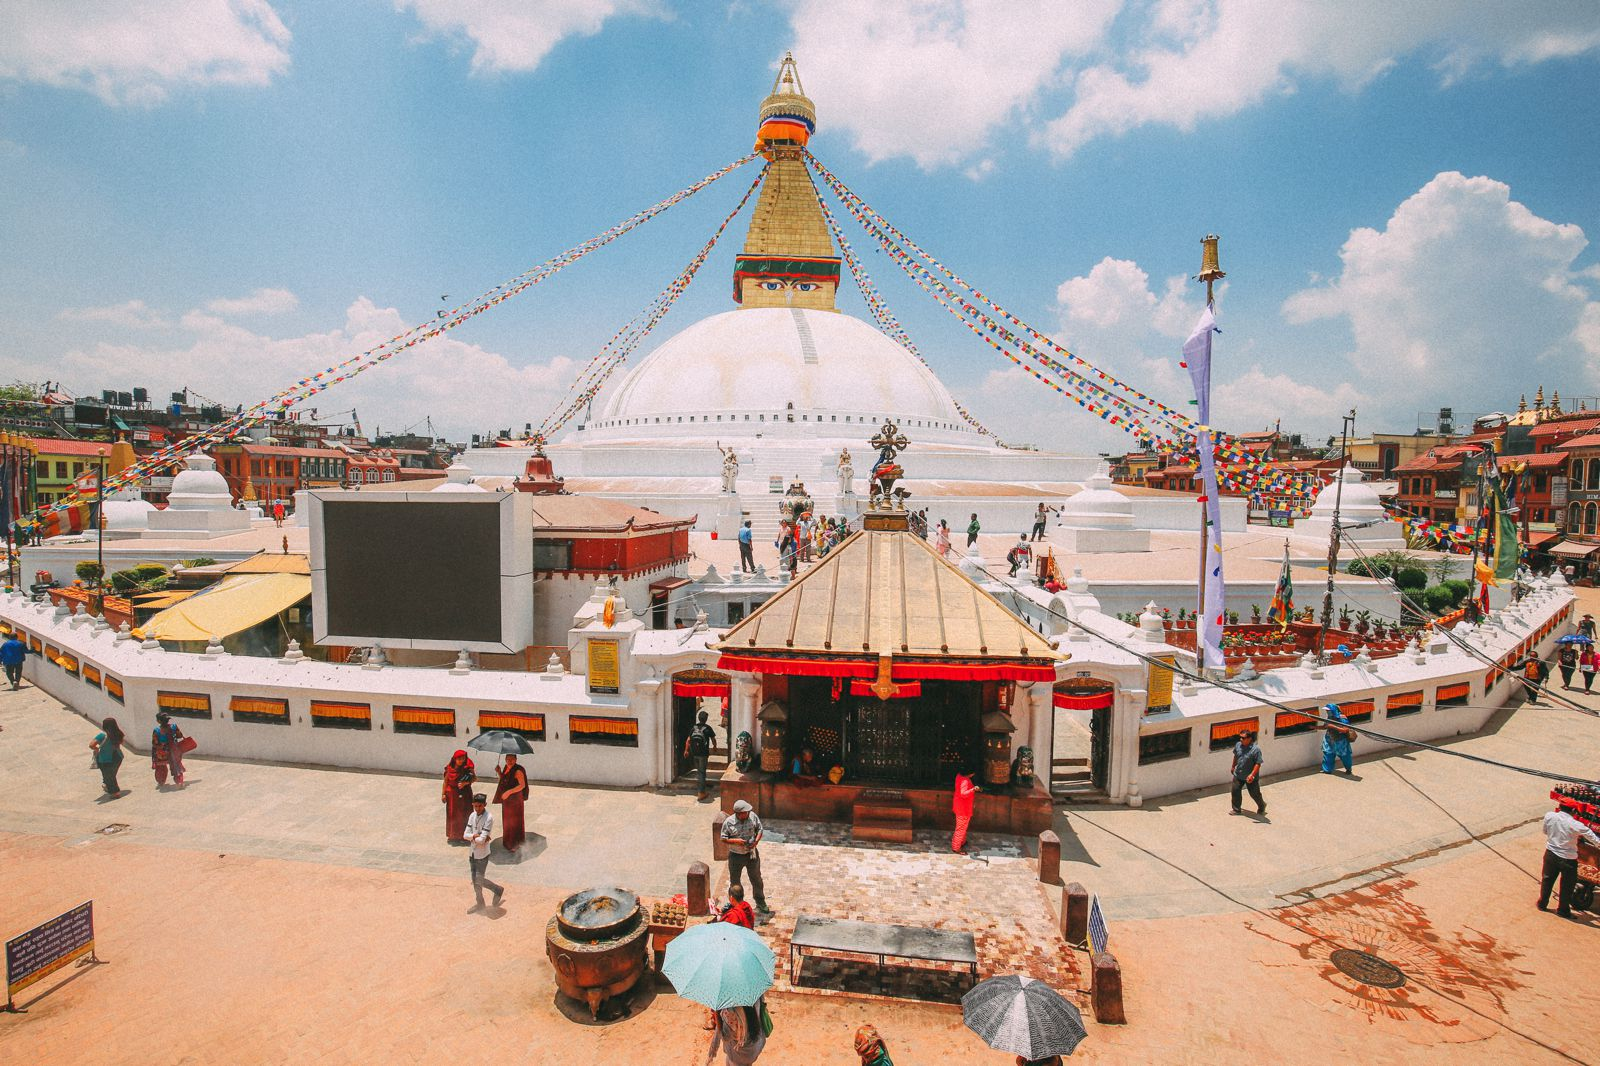 The UNESCO World Heritage Site Of Boudhanath Stupa In Kathmandu, Nepal (29)